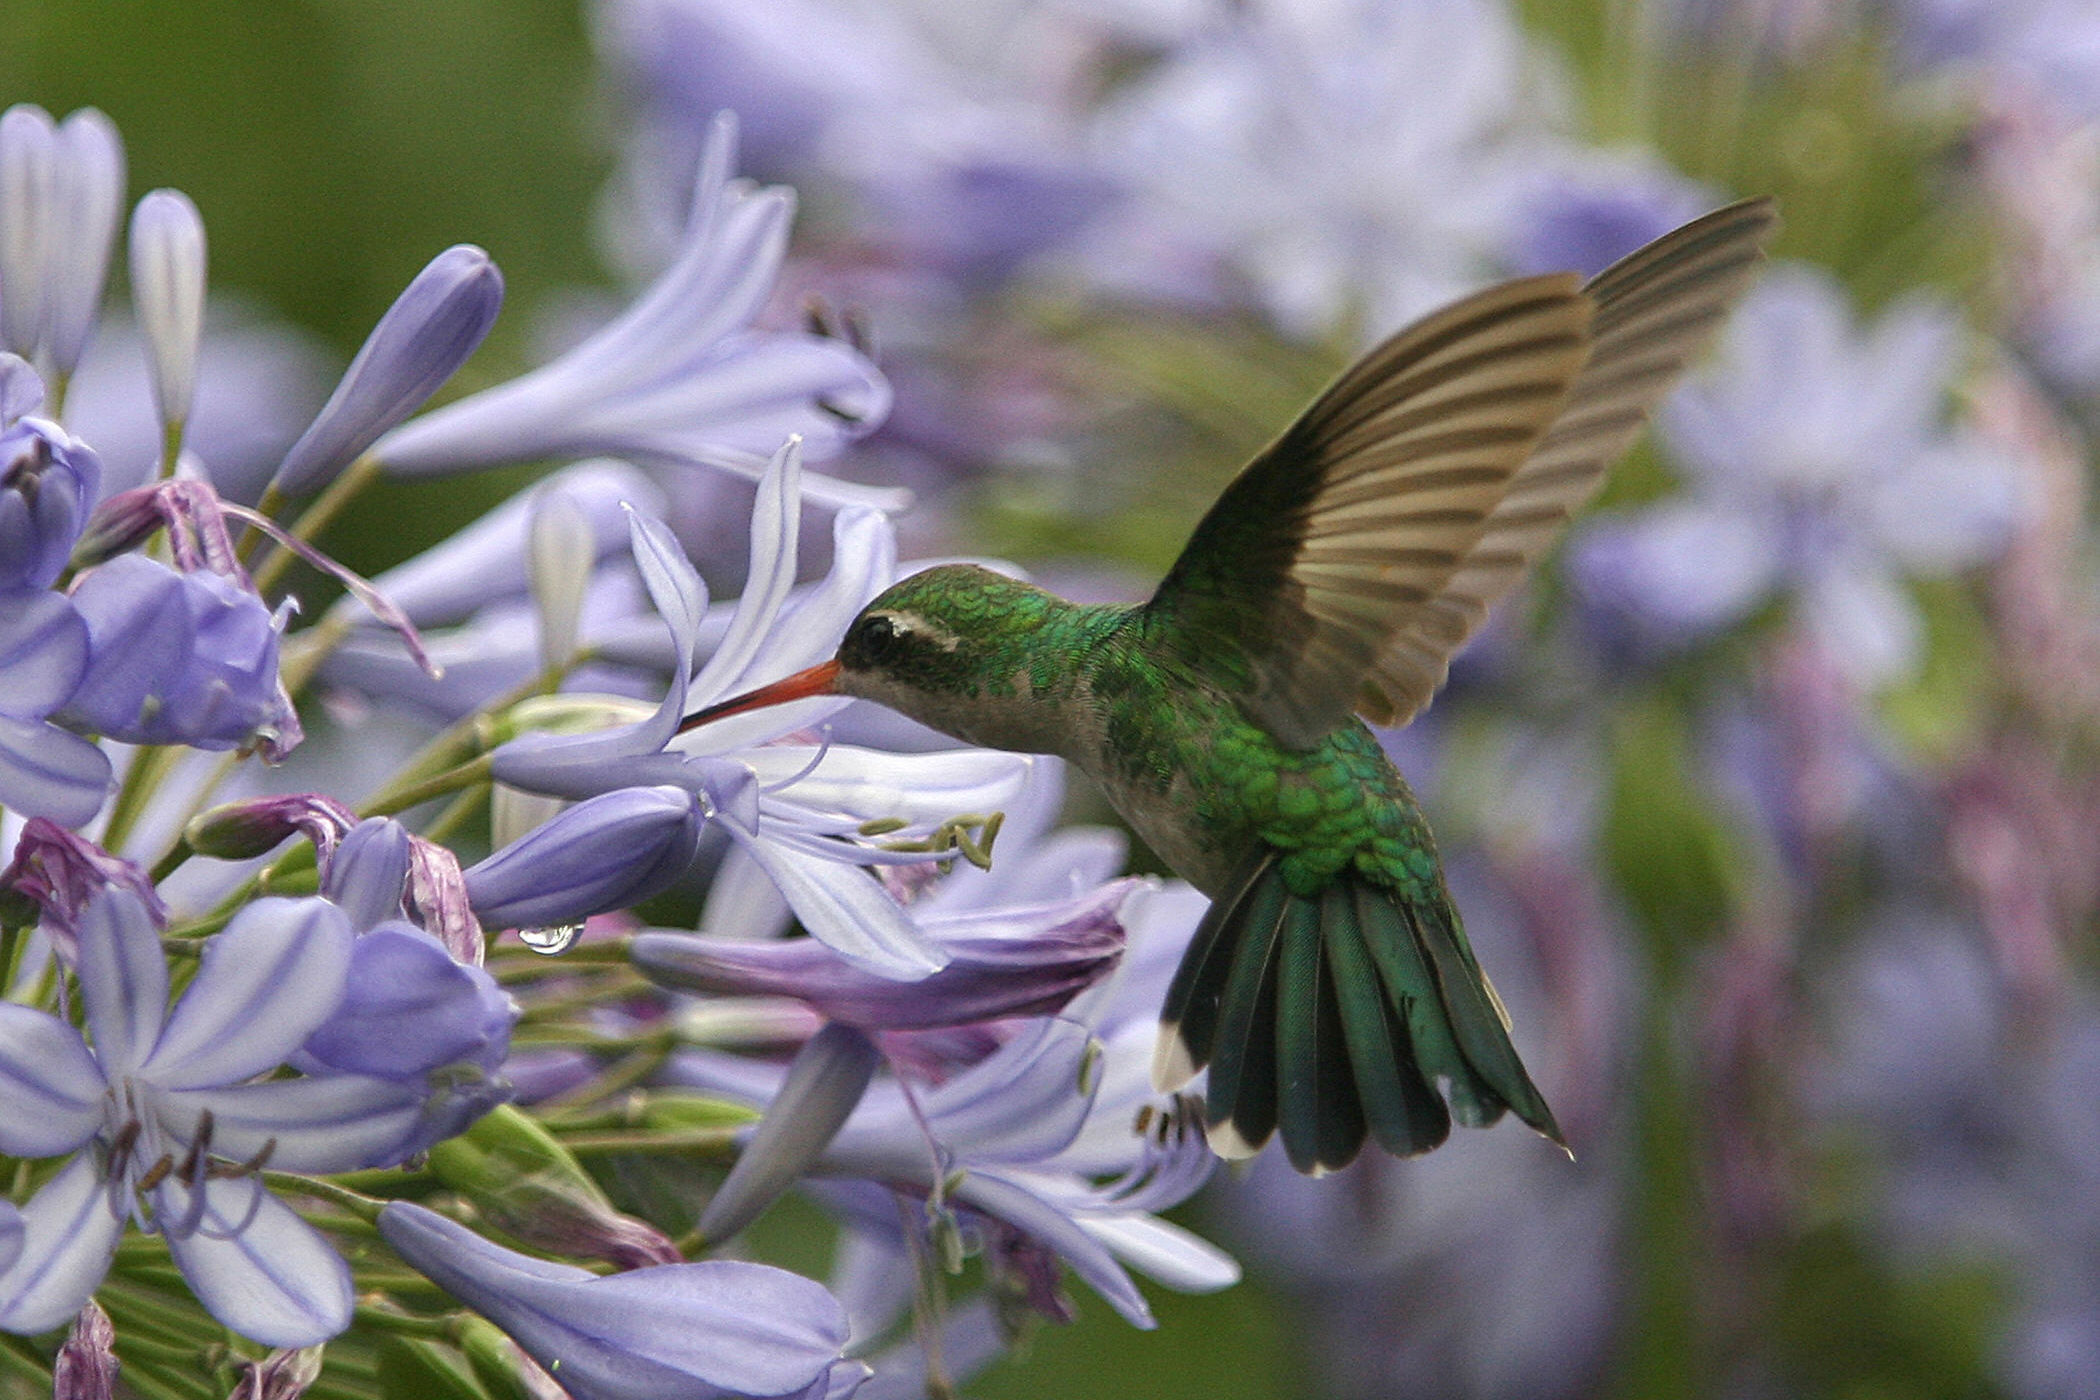 The Best Flowers To Attract Butterflies, Bees, and Hummingbirds